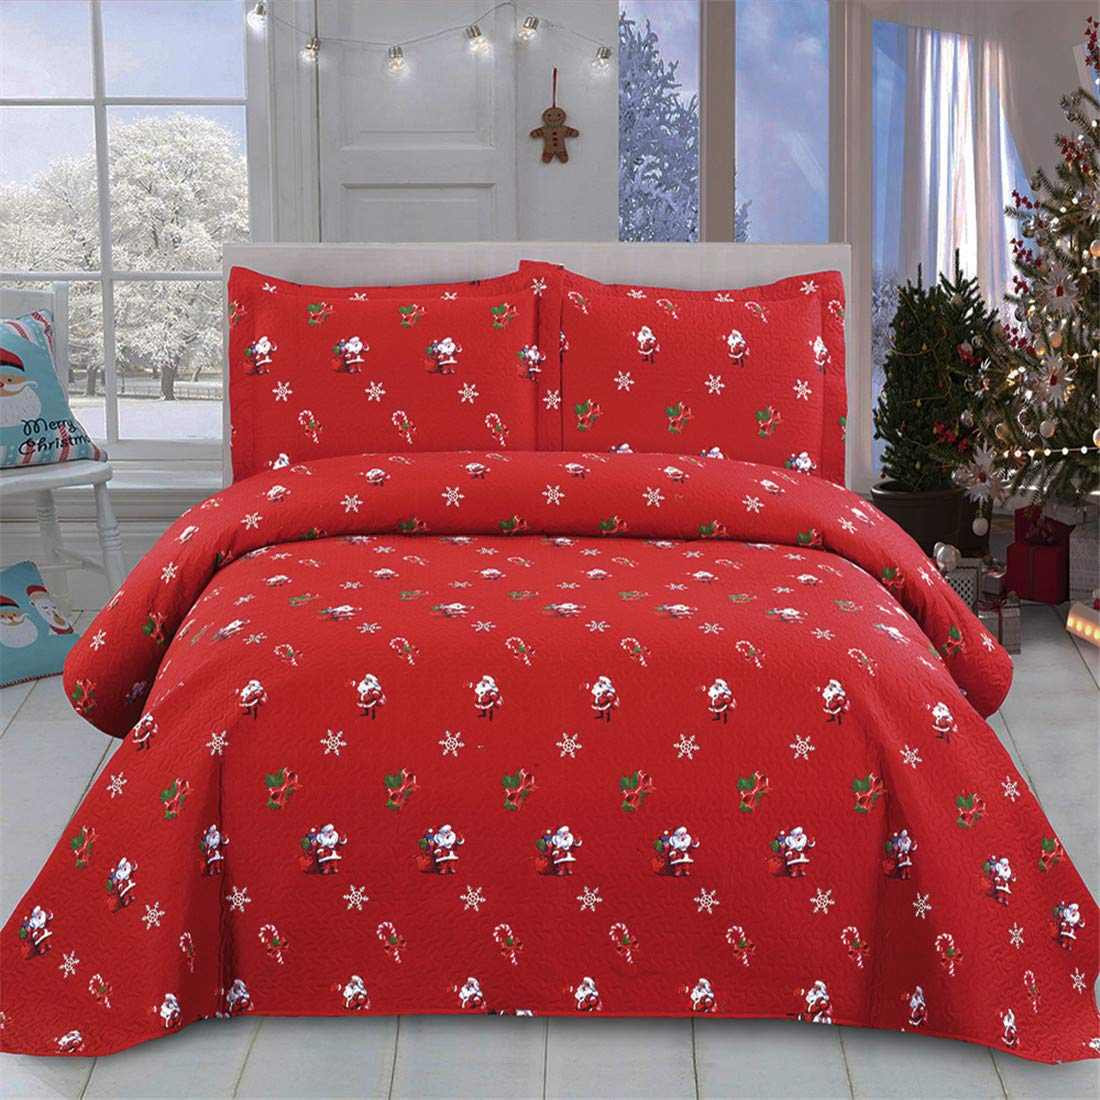 Lightweight Blanket Reversible Bed Cover 3D Cartoon Christmas Santa Claus Christmas Bedding Christmas Home Decor,Red